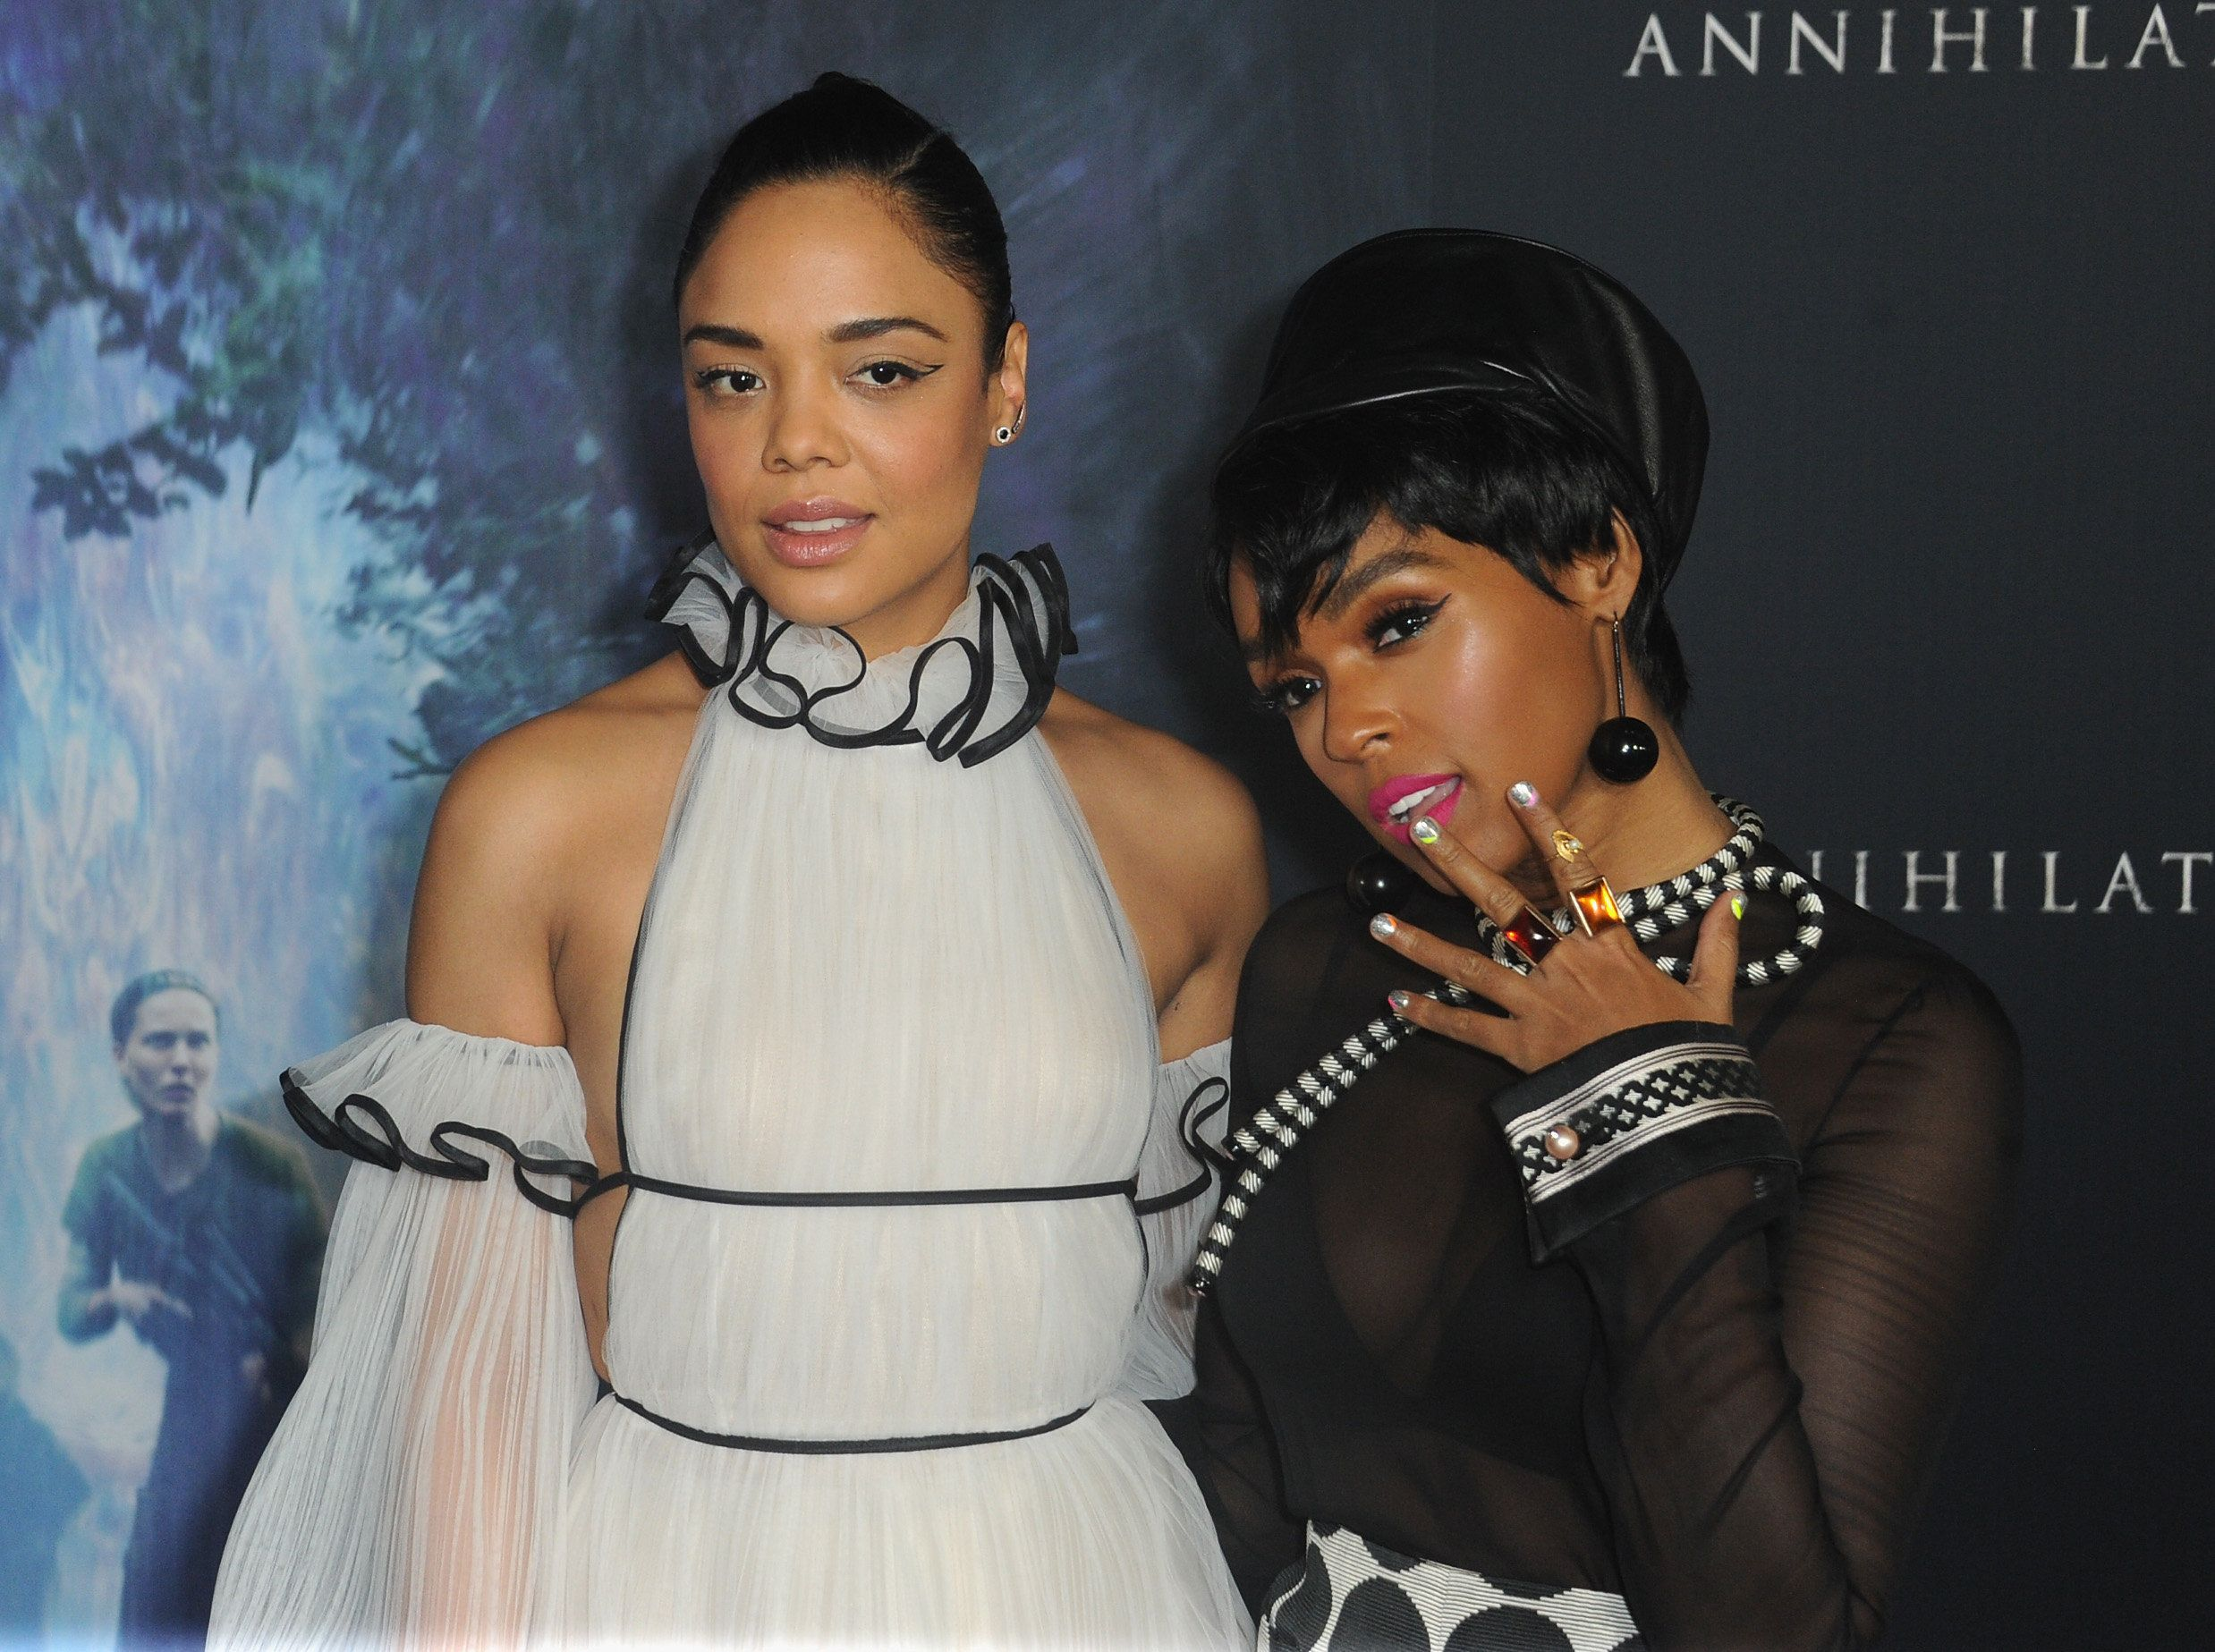 WESTWOOD, CA - FEBRUARY 13:  Actress Tessa Thompson and singer/actress Janelle Monae arrive for the Premiere Of Paramount Pictures' 'Annihilation' held at Regency Village Theatre on February 13, 2018 in Westwood, California.  (Photo by Albert L. Ortega/Getty Images)